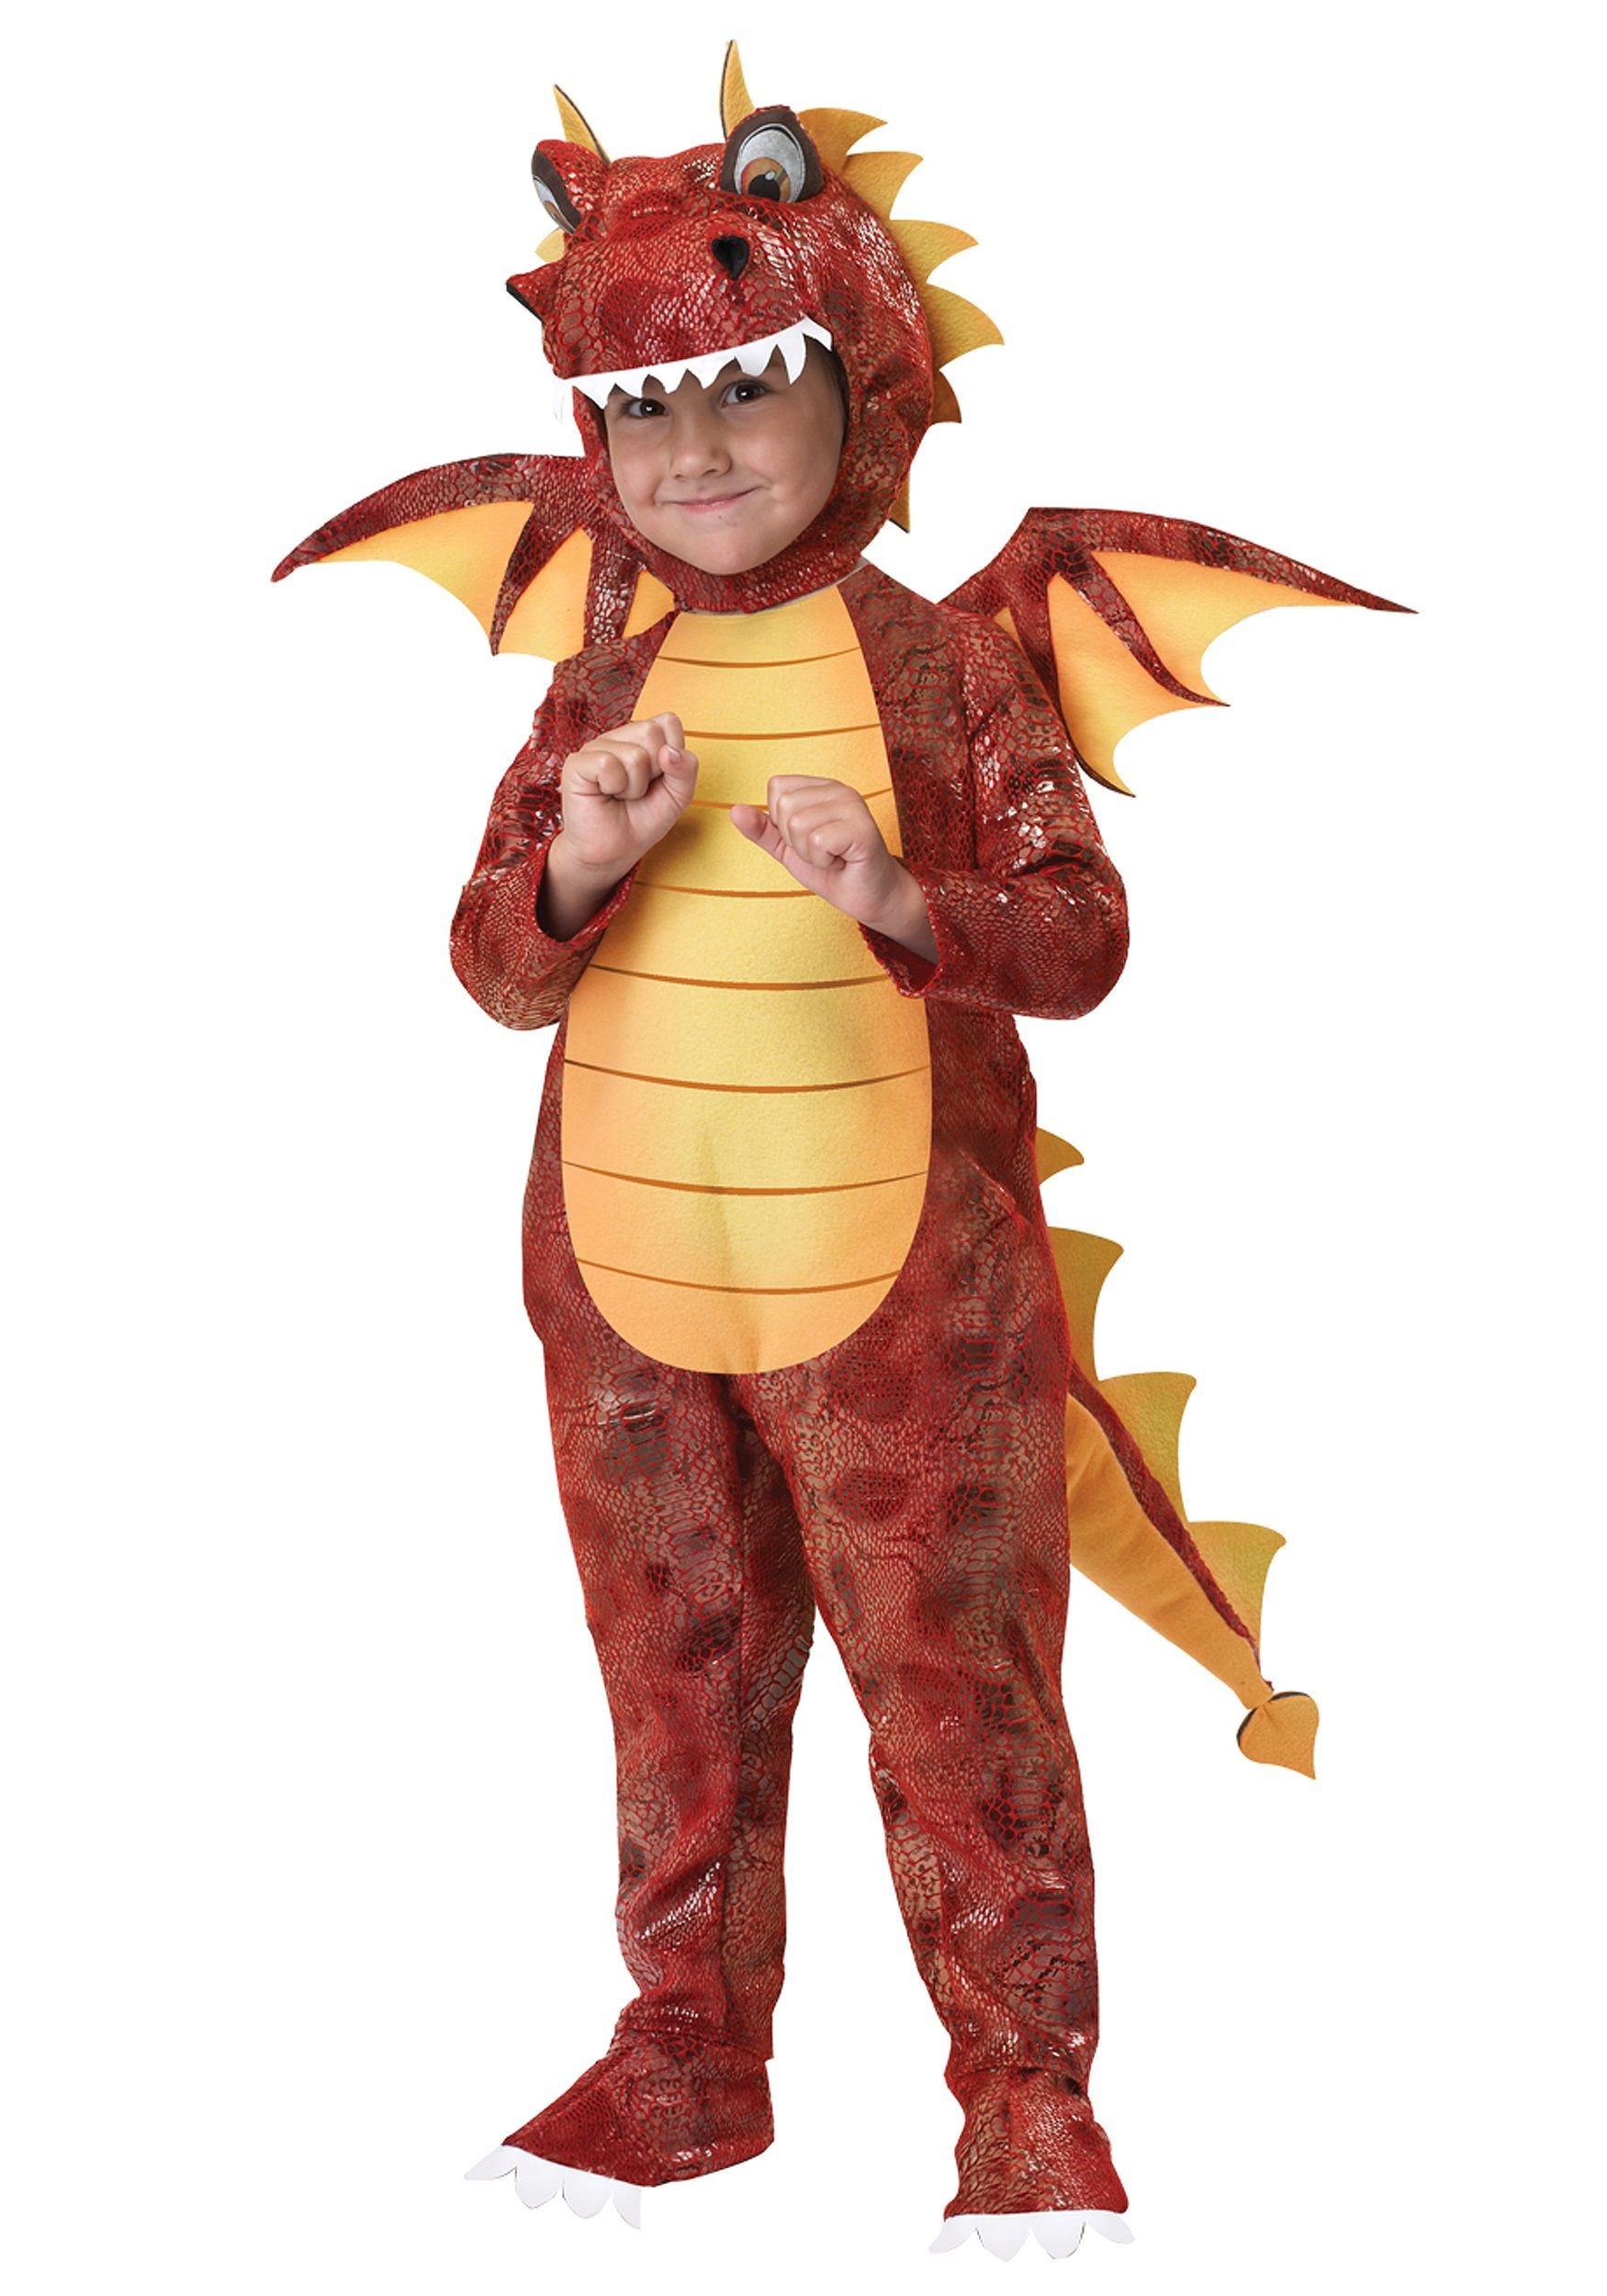 ff2c940f61c93 Dragon Costumes - Toddler, Kids Dragon Halloween Costumes | Monster ...